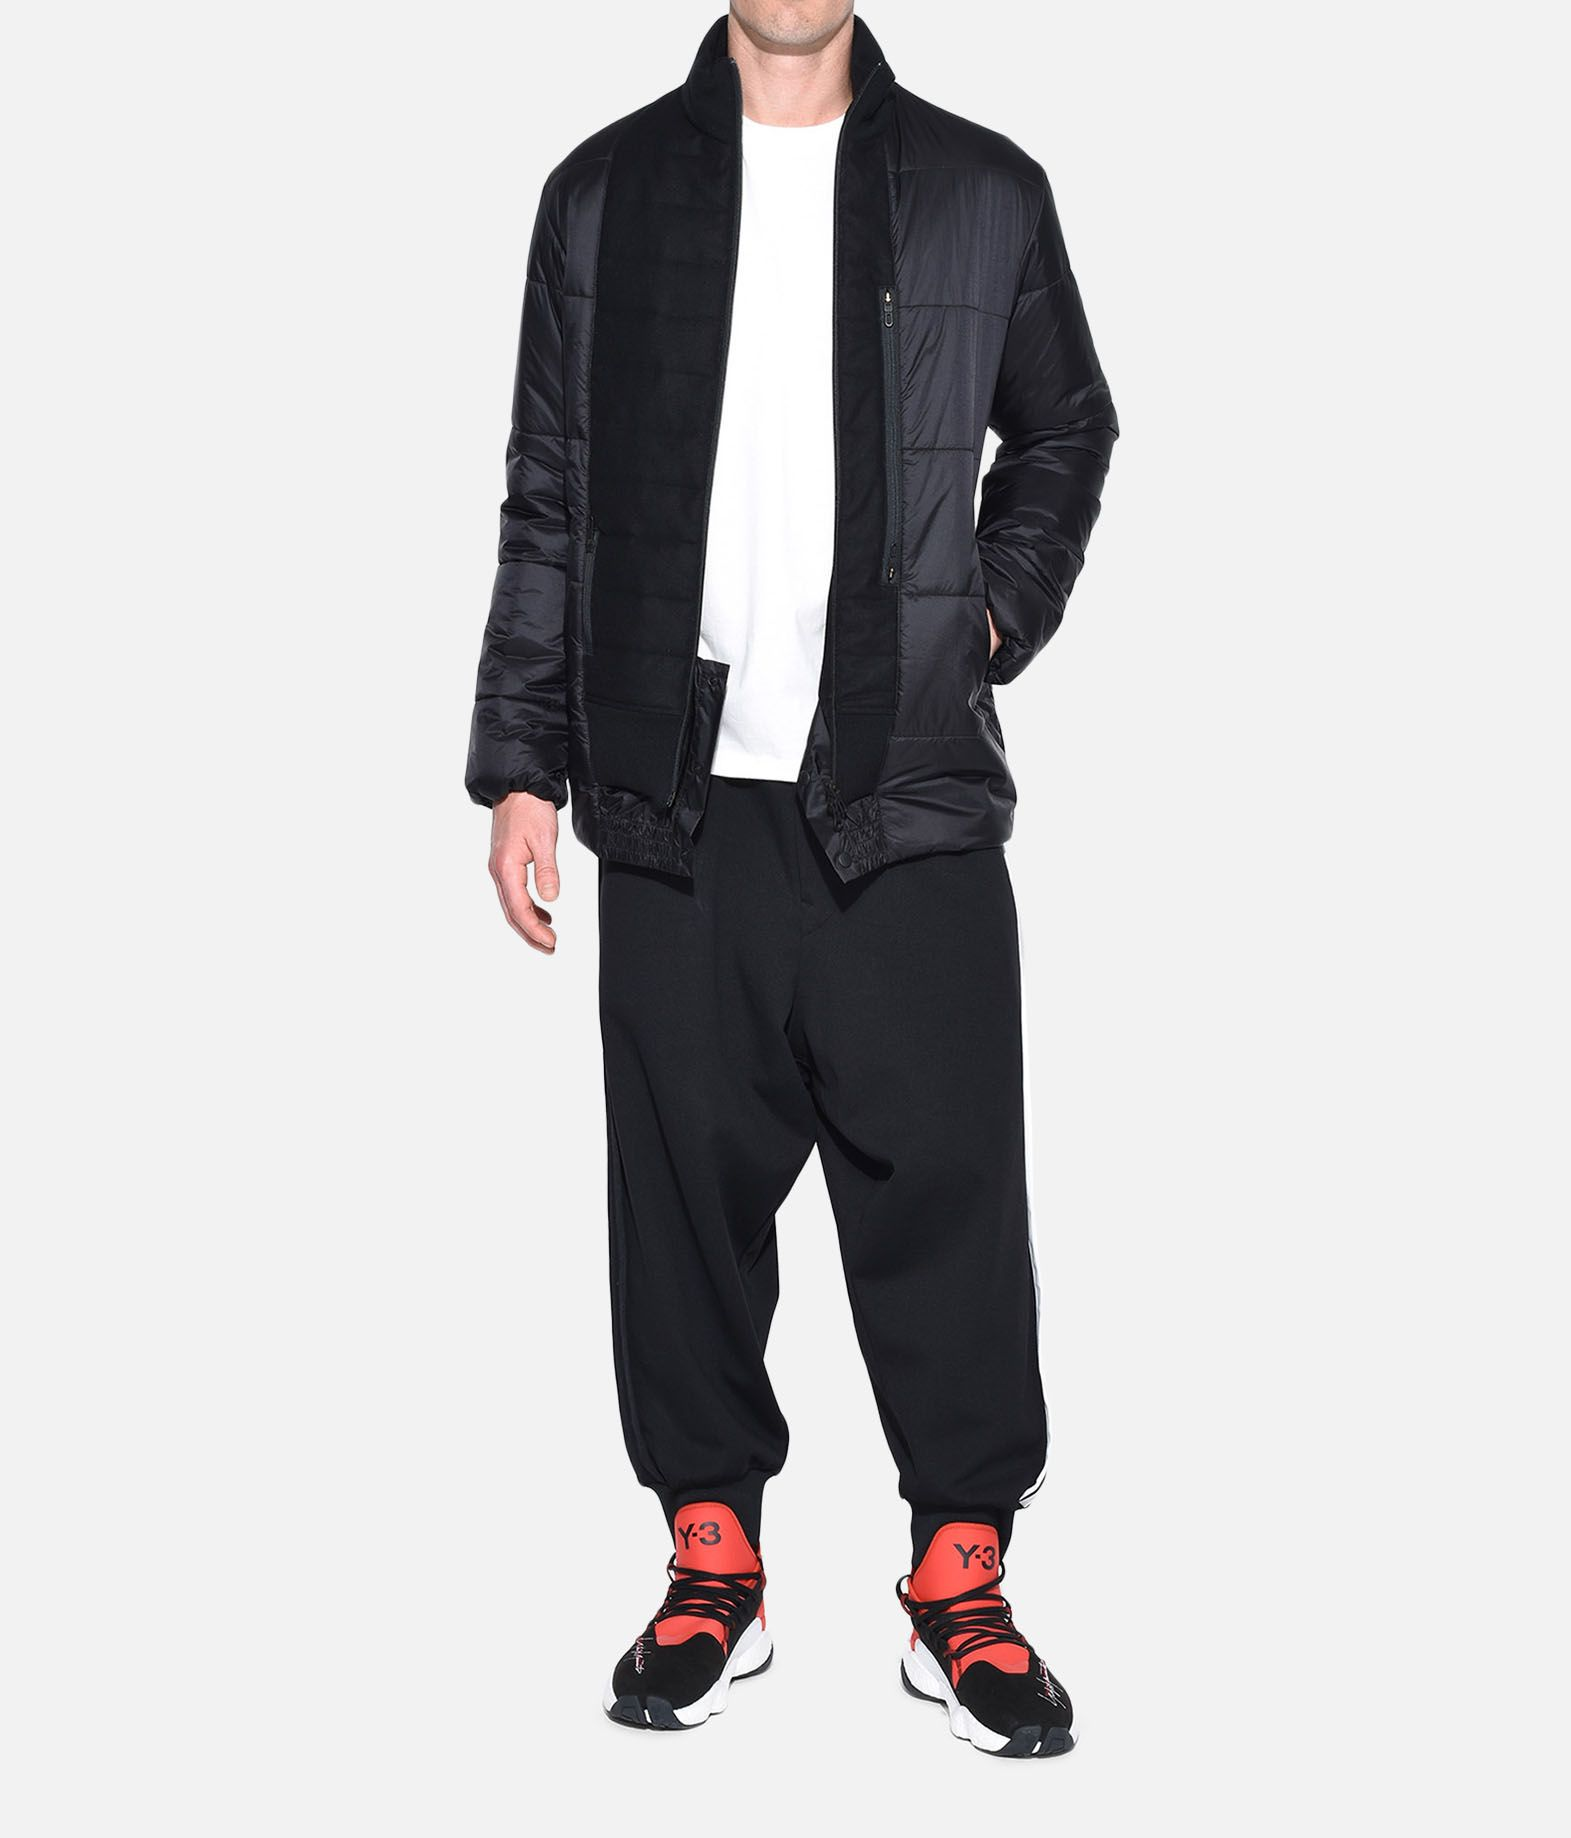 Y-3 Y-3 Patchwork Down Jacket ダウン メンズ a